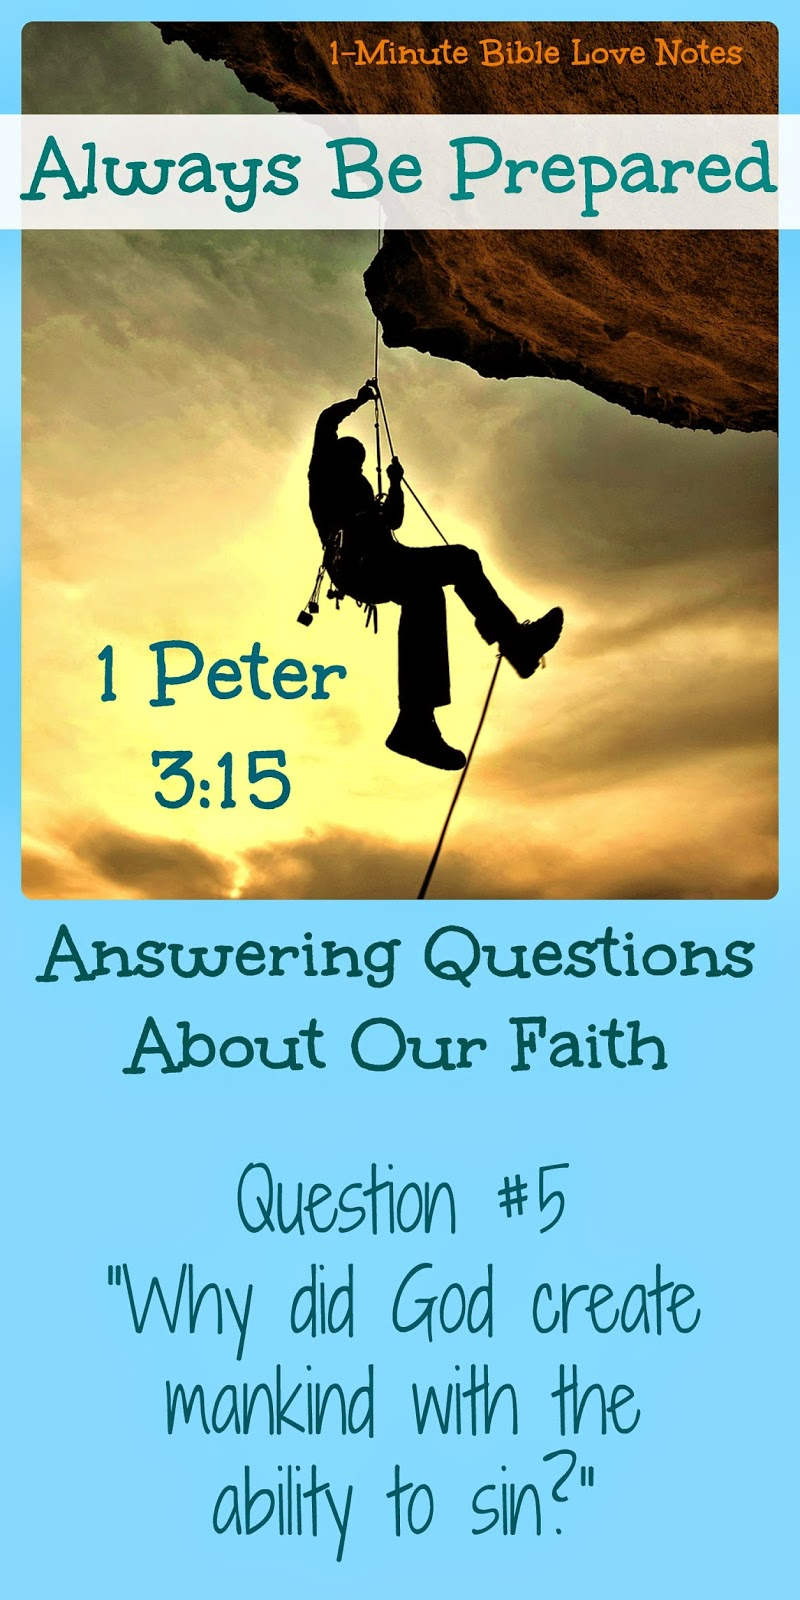 1 Peter 3:15, answering questions about faith, why Adam and Eve sinned, why God created Adam and Eve with the ability to sin